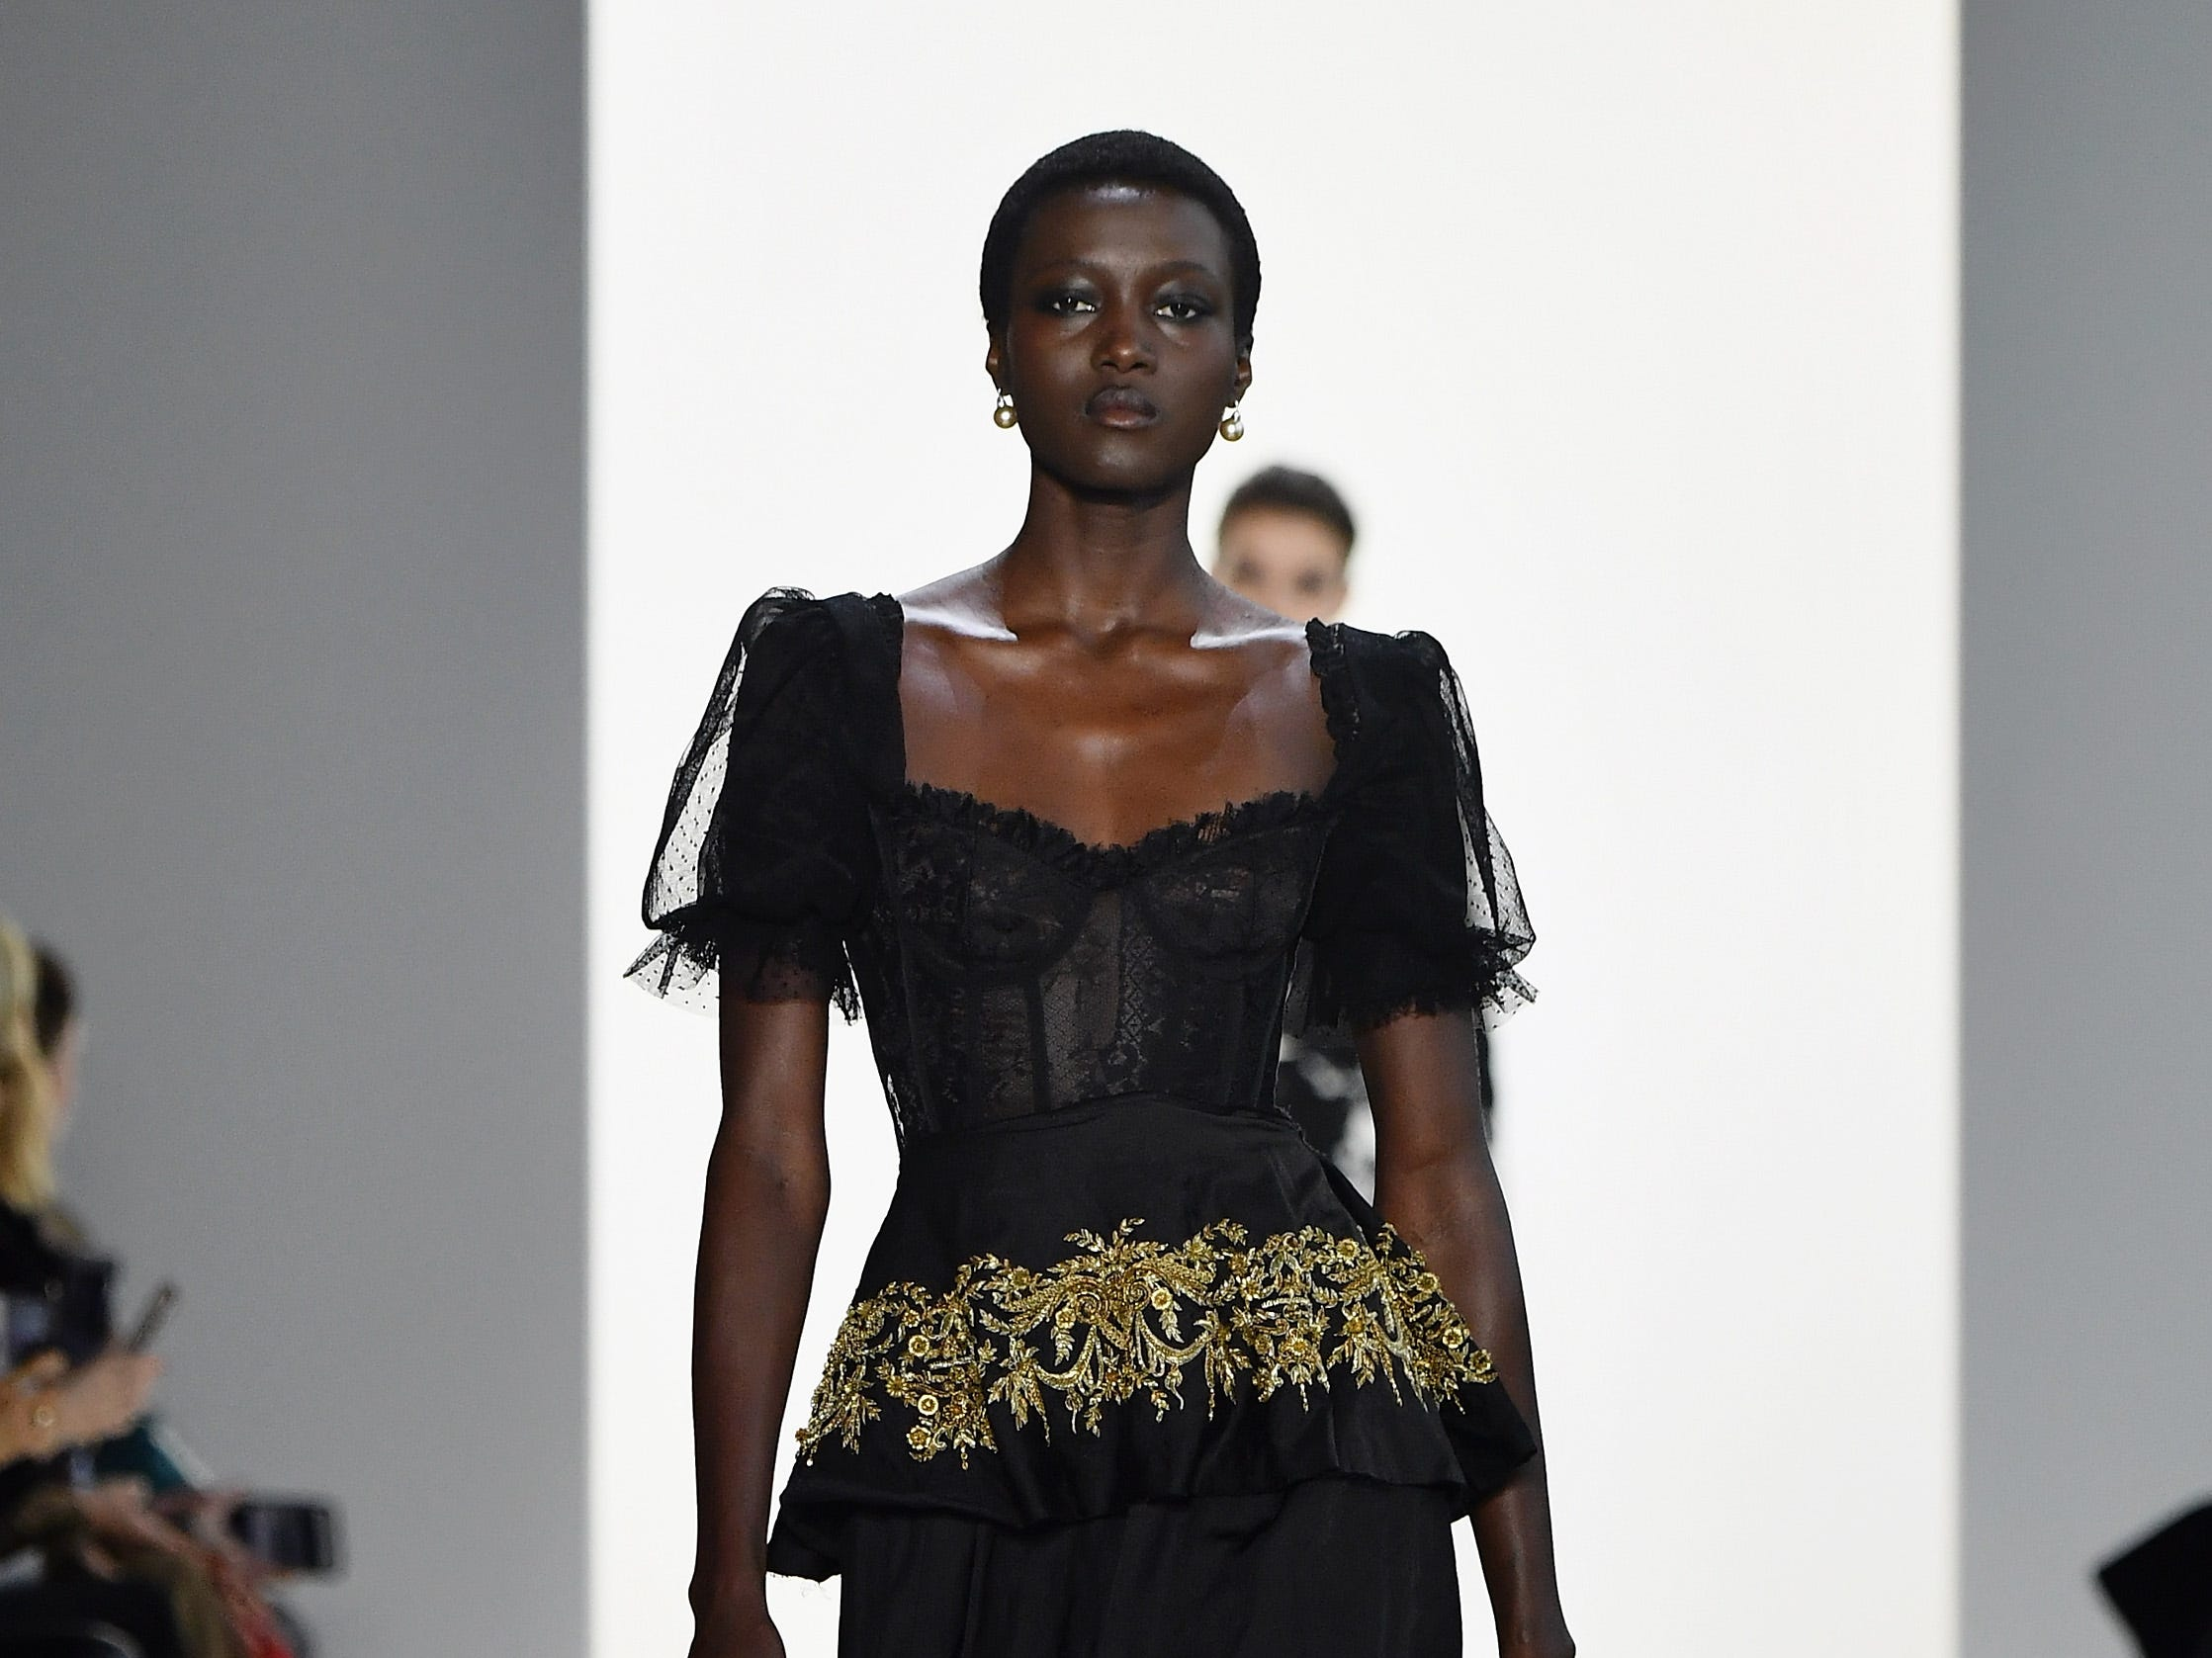 NEW YORK, NY - FEBRUARY 08:  A model walks the runway for the Brock Collection fashion show during New York Fashion Week: The Shows at Gallery I at Spring Studios on February 8, 2019 in New York City.  (Photo by Mike Coppola/Getty Images for NYFW: The Shows) ORG XMIT: 775289359 ORIG FILE ID: 1095510484